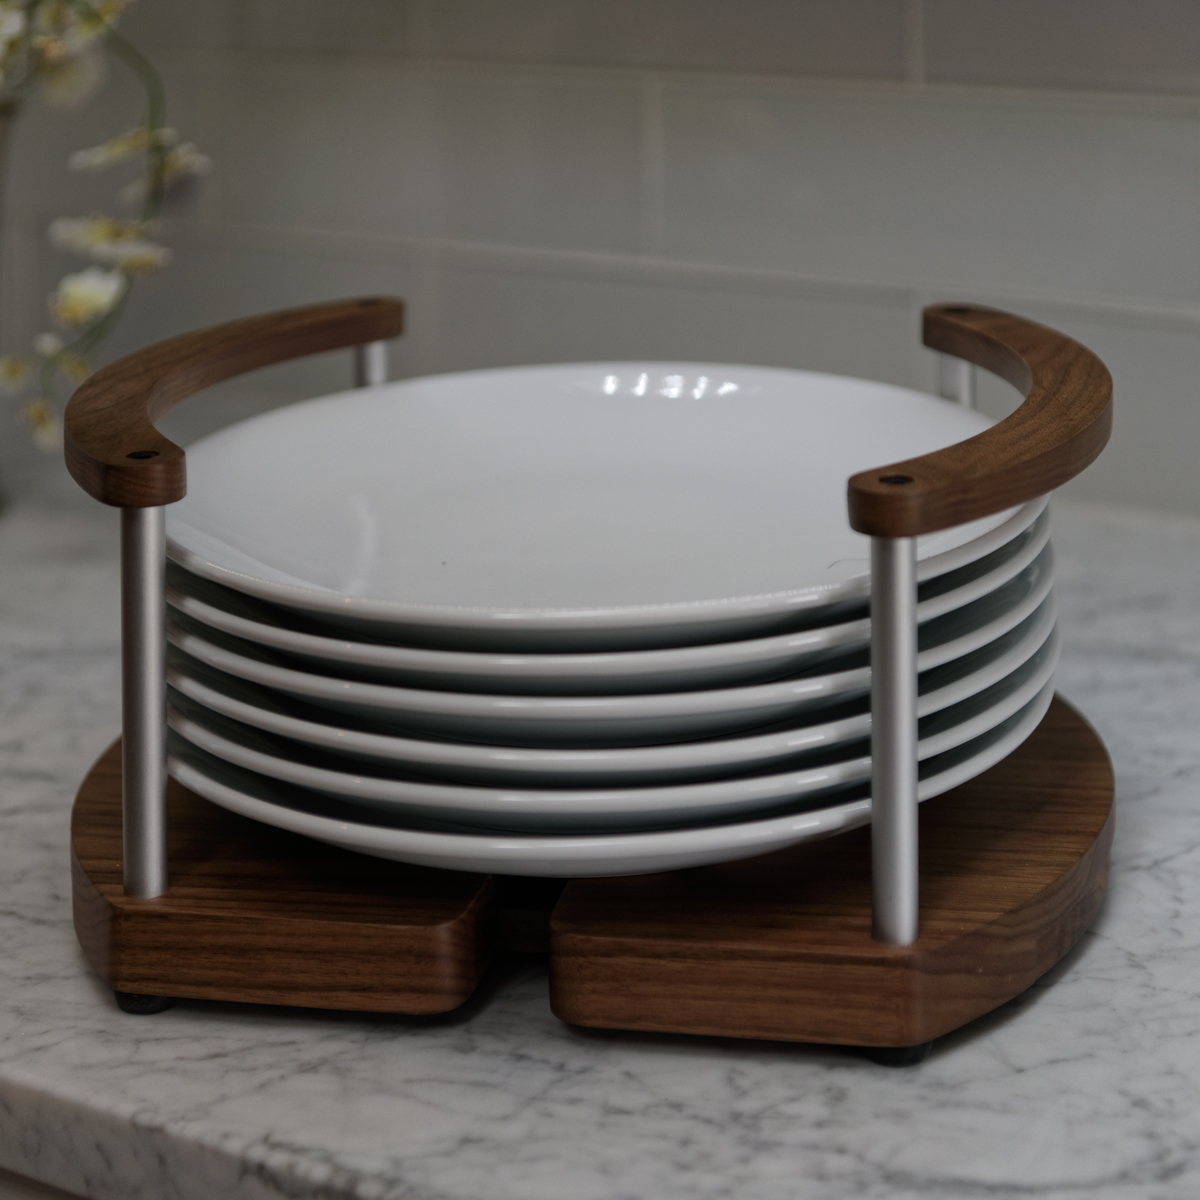 BIN by Arbor Mills Plate Holder from drawer to table